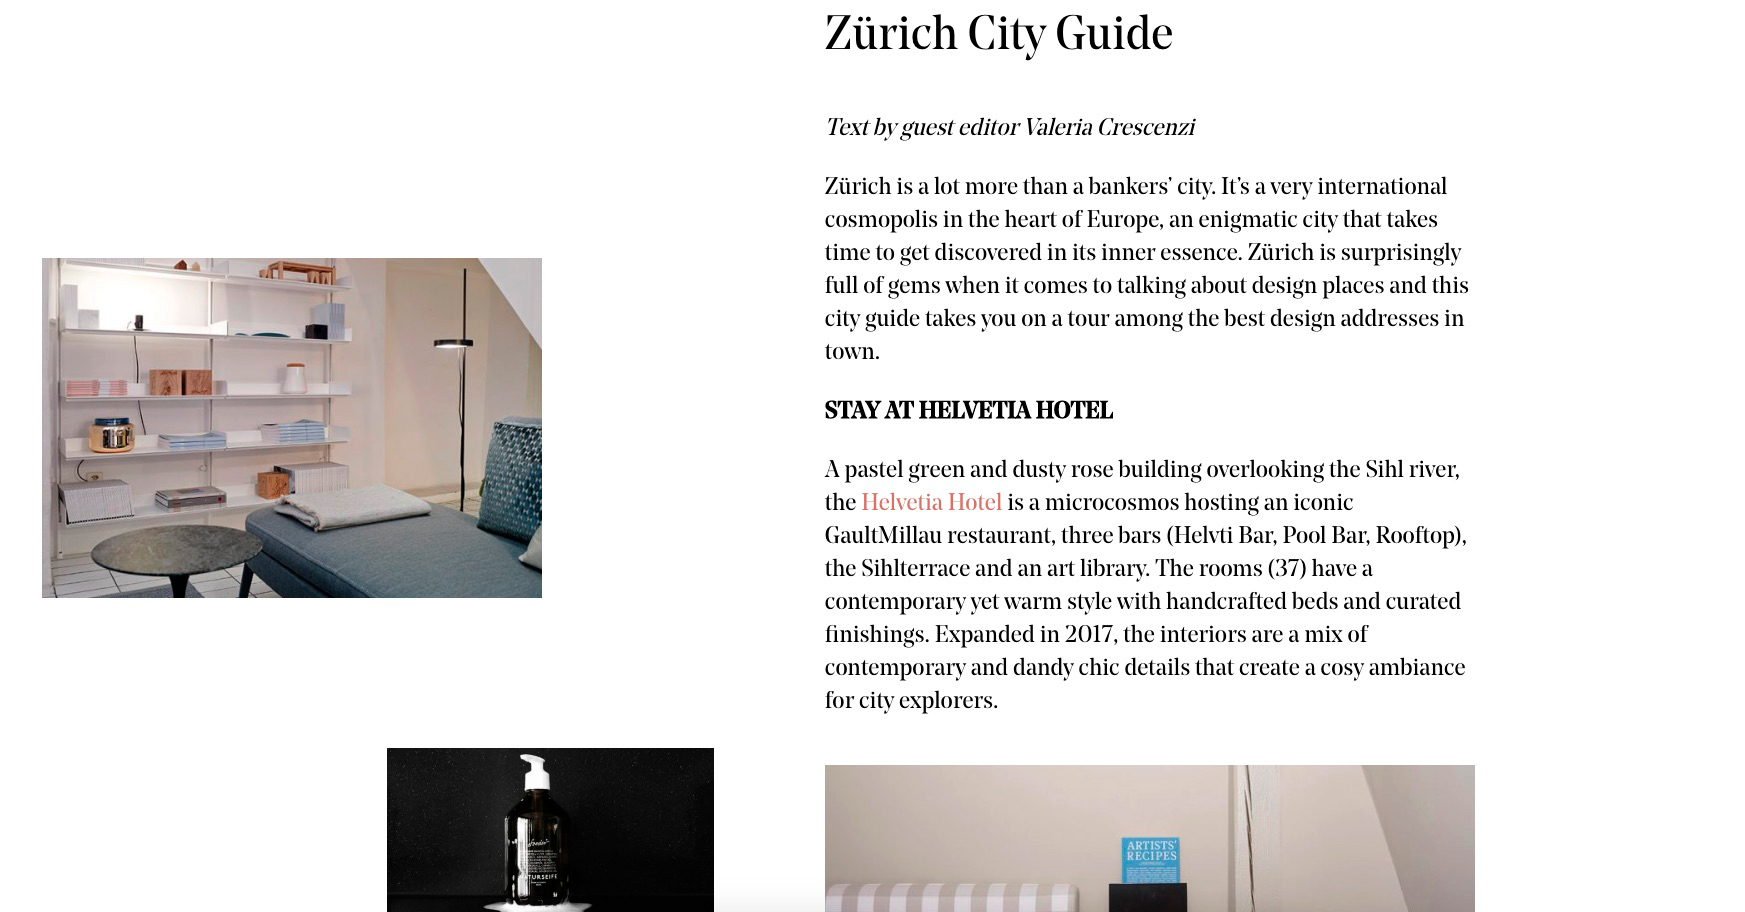 Make space journal: Zürich City Guide